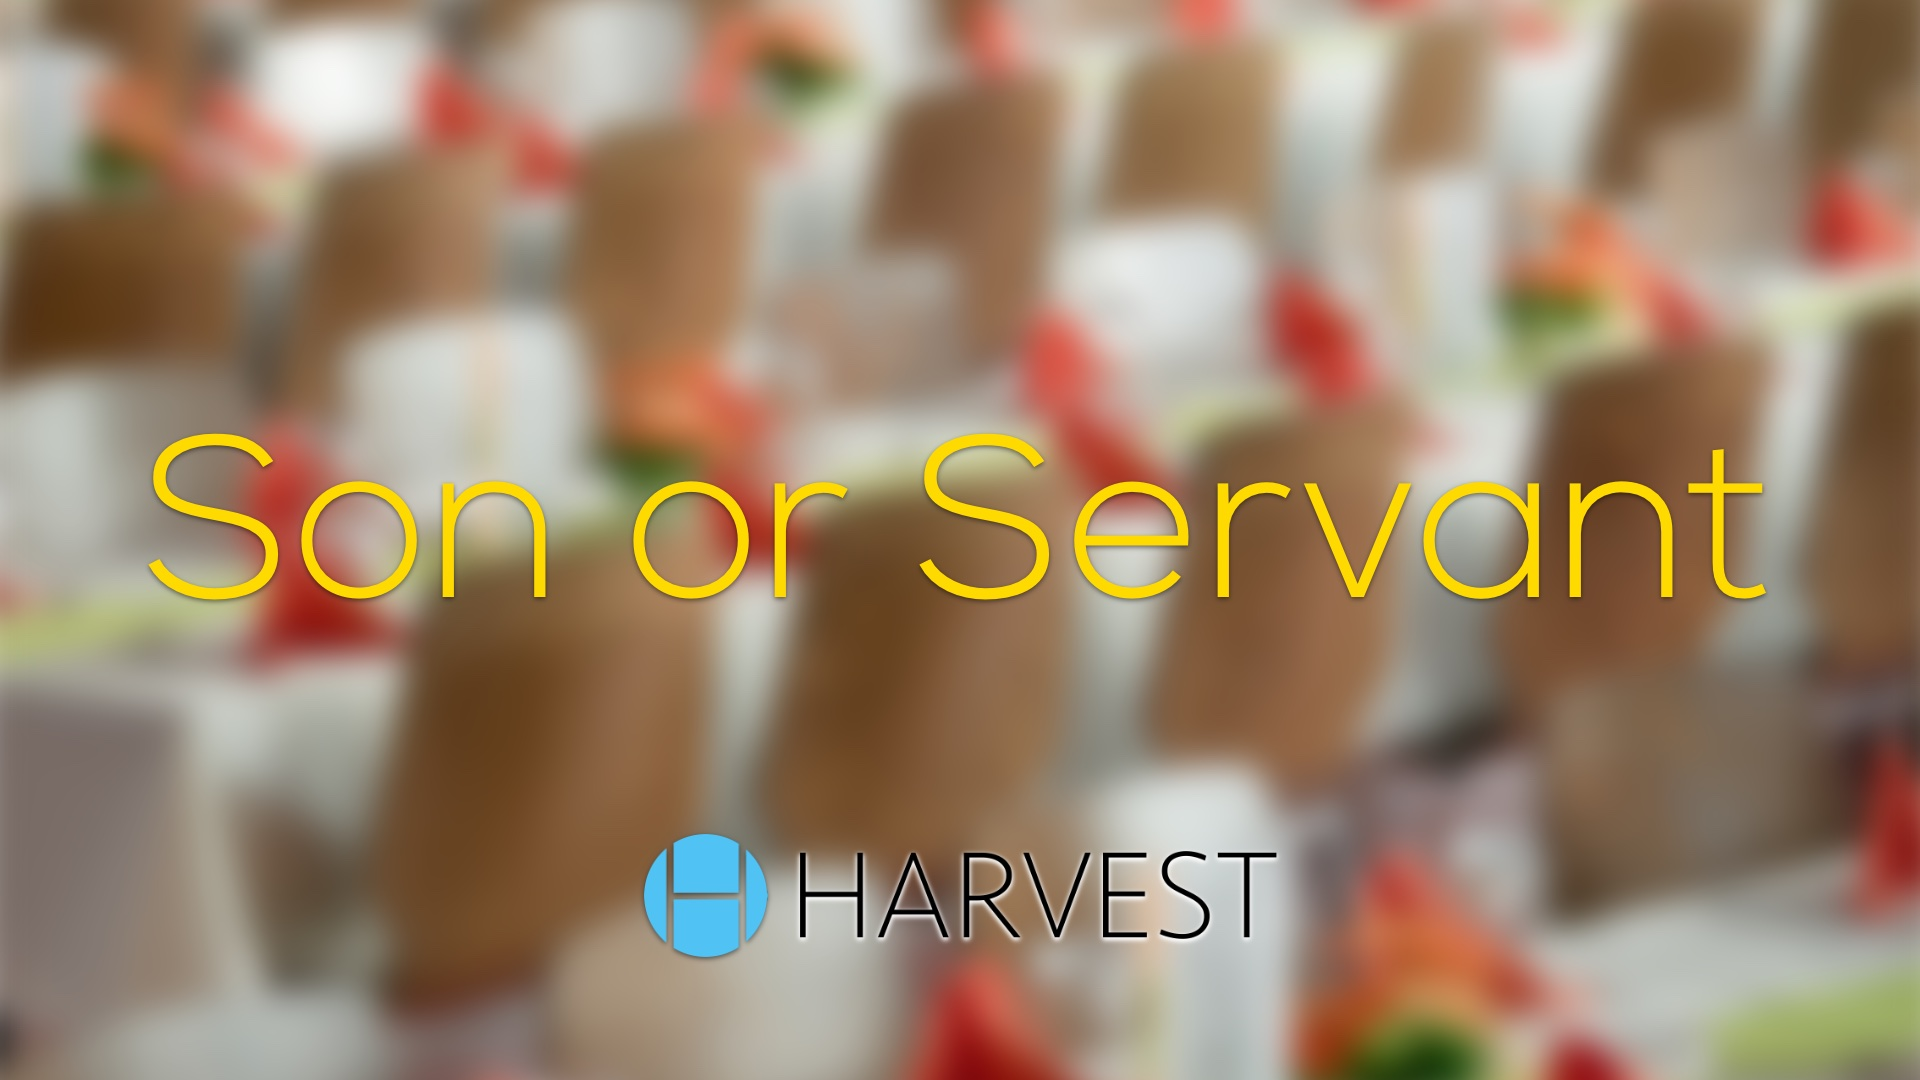 Son or Servant